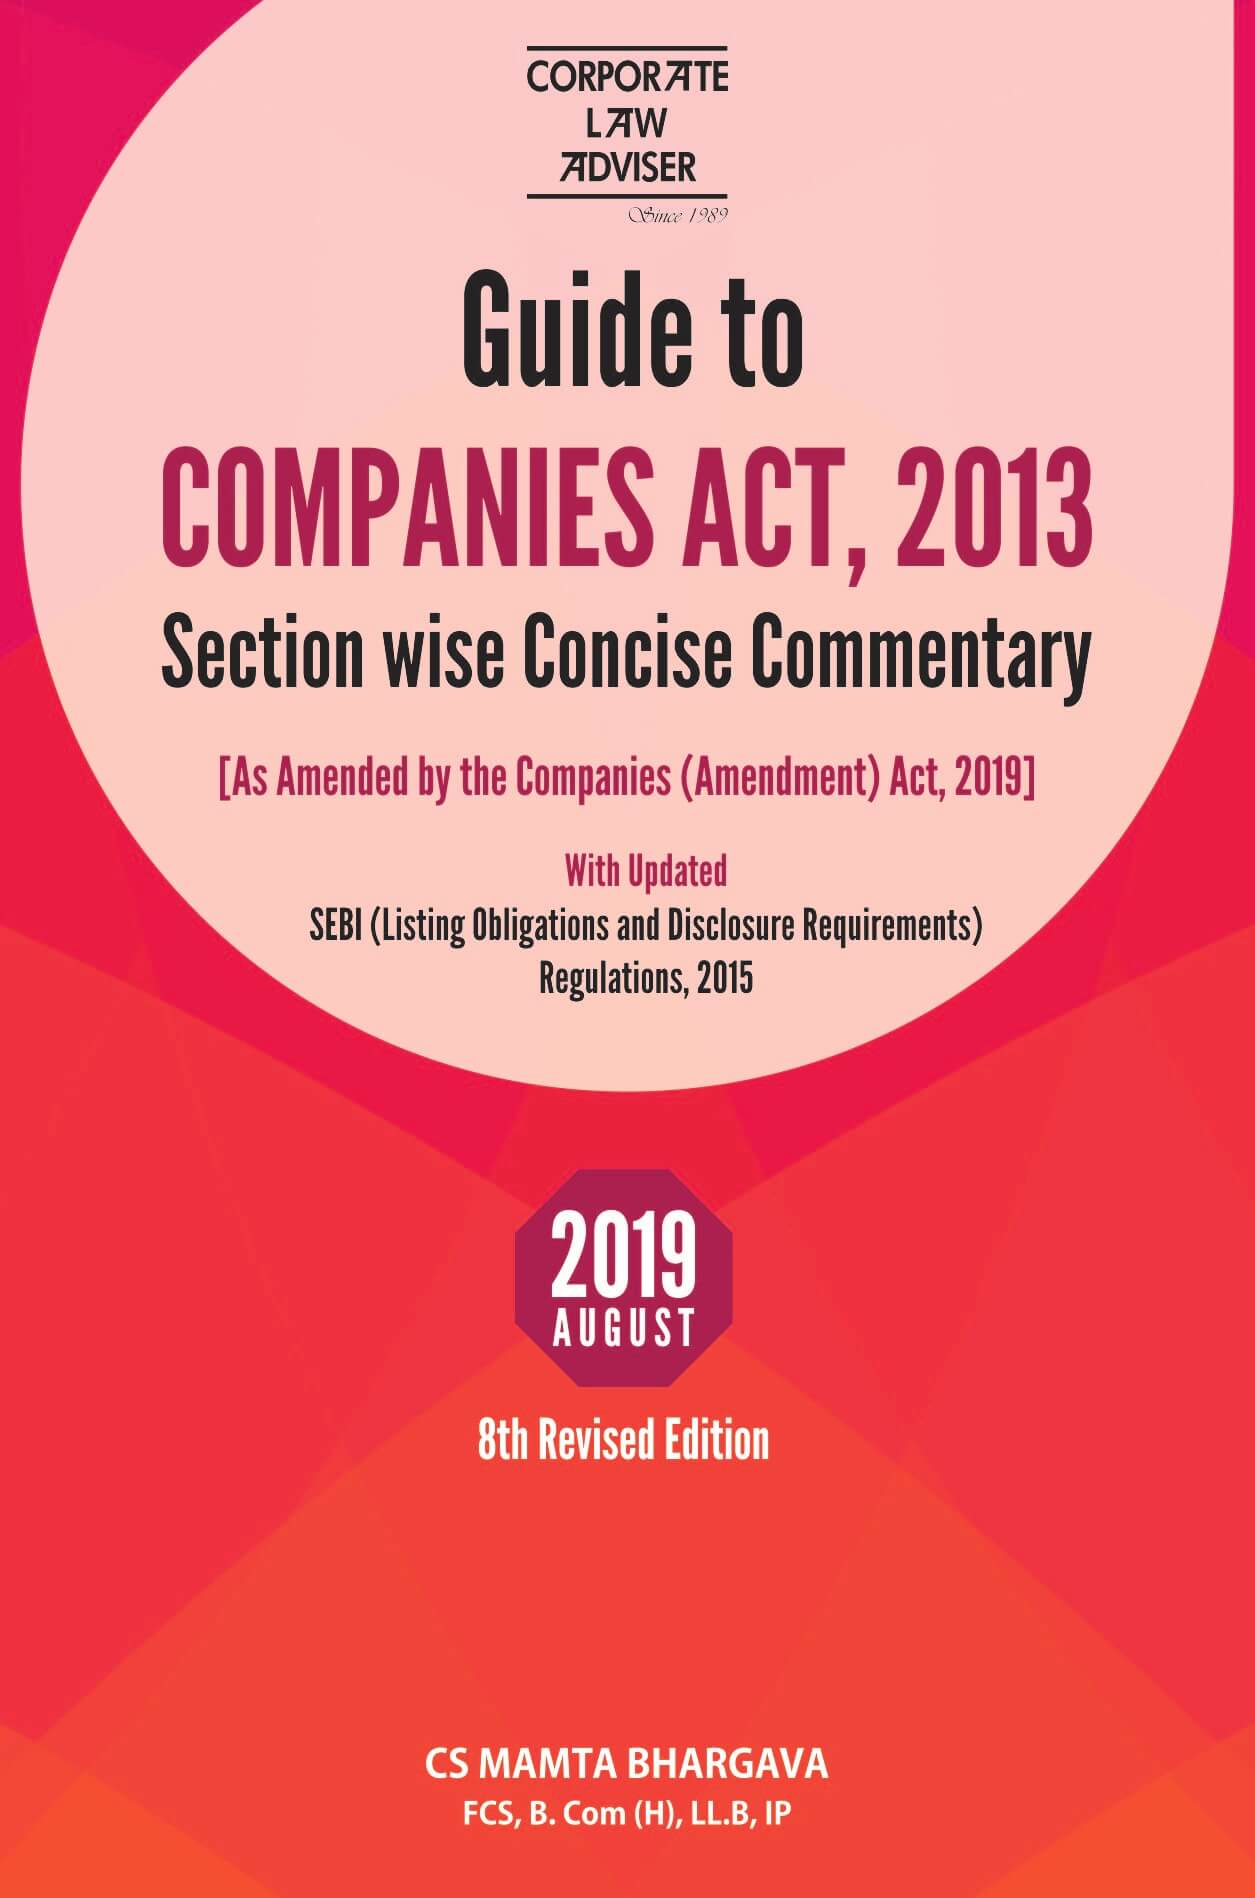 Guide to COMPANIES ACT, 2013